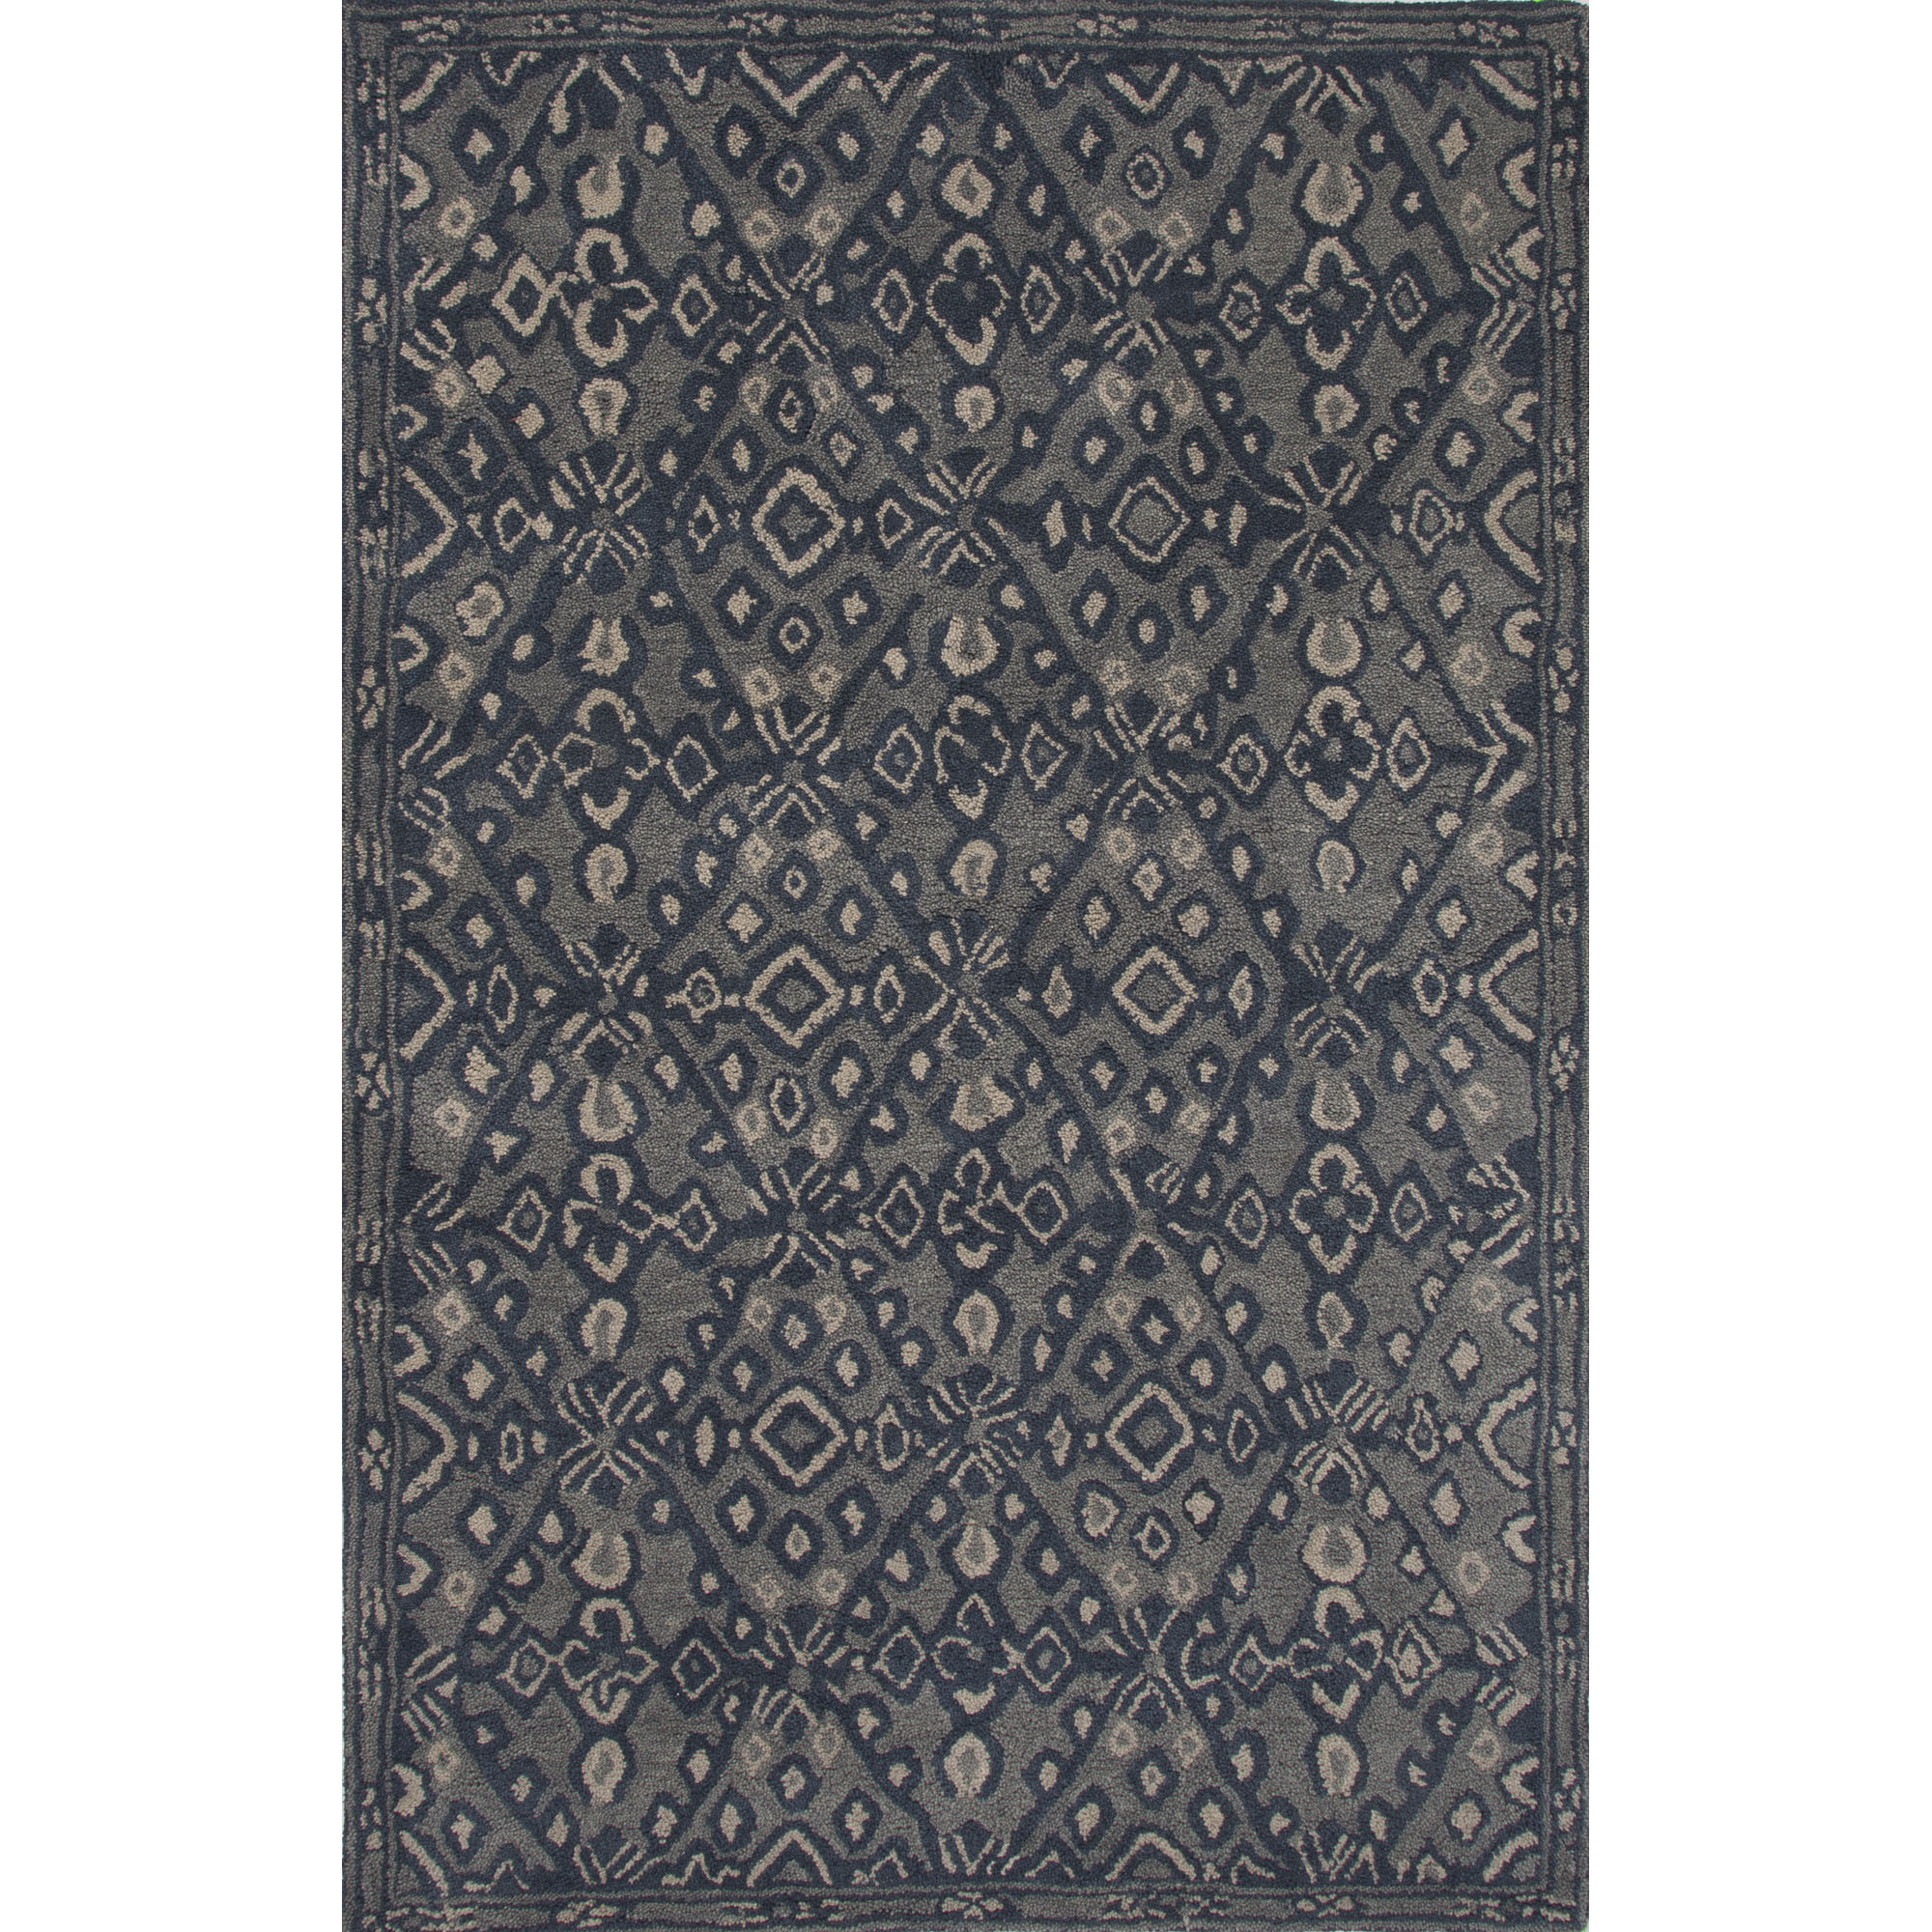 JAIPUR Rugs Traditions Made Modern Tufted 2 x 3 Rug - Item Number: RUG122196